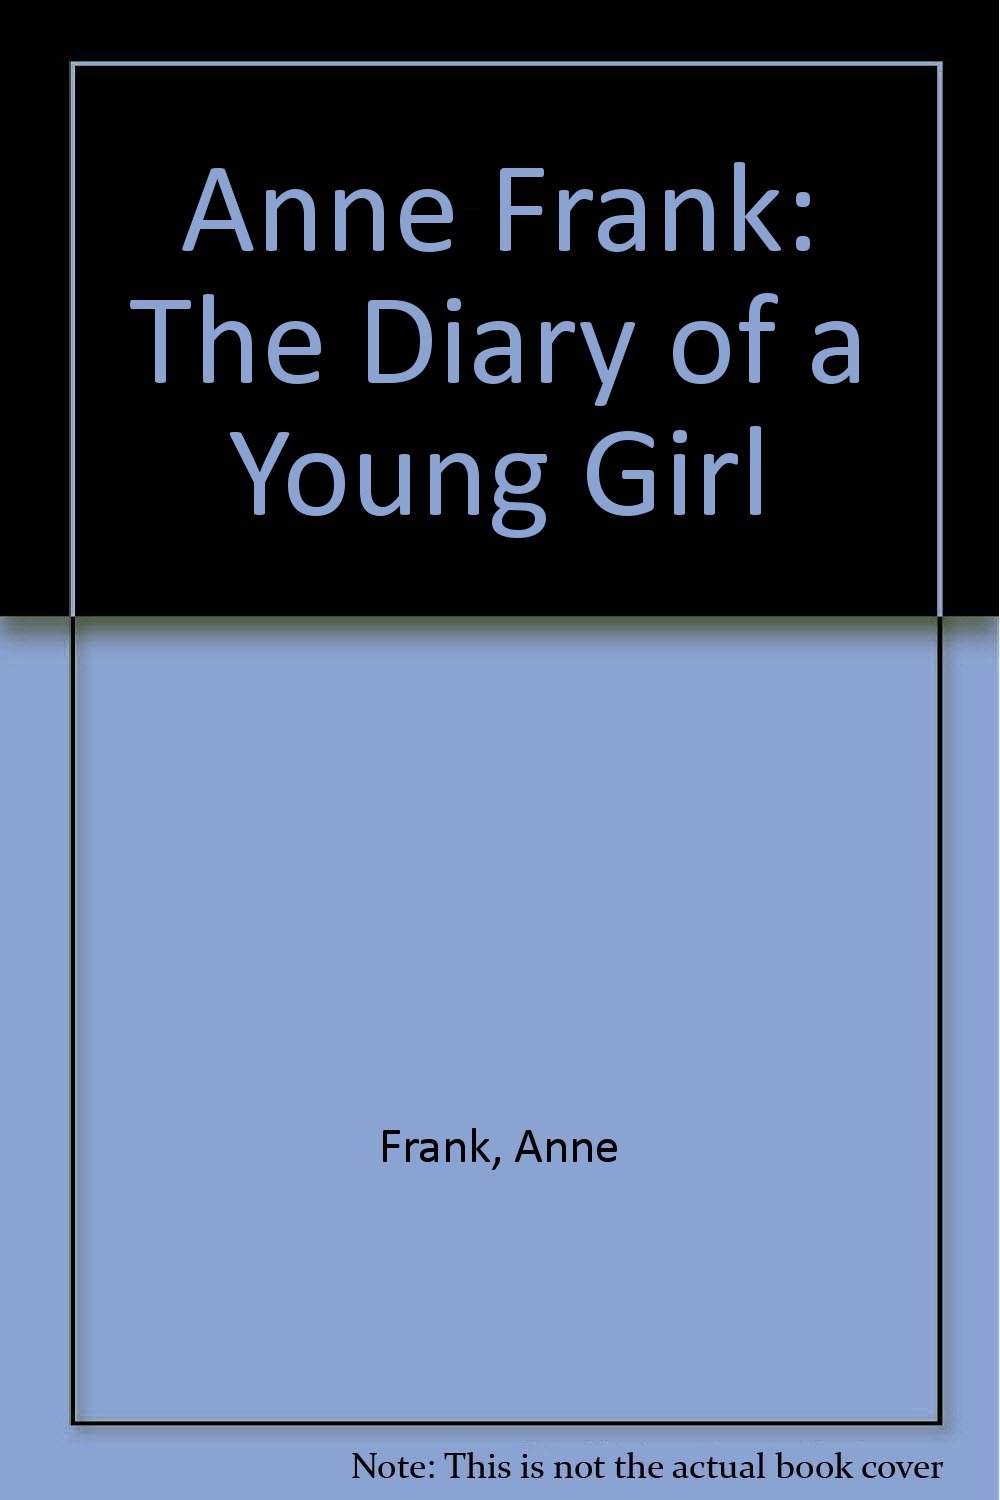 Download Anne Frank: The Diary of a Young Girl PDF